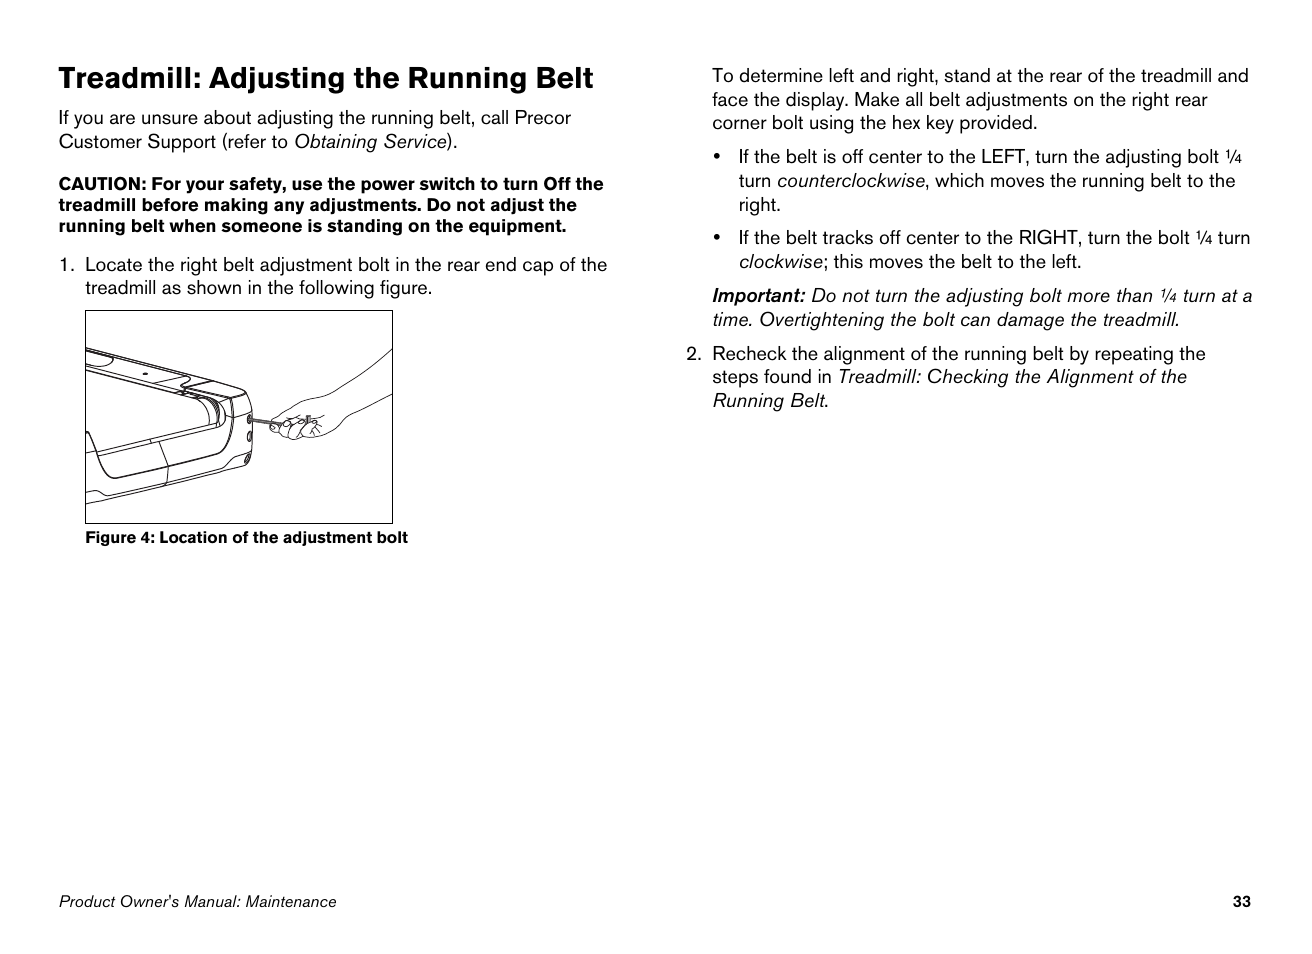 Precor Treadmill Wiring Diagram Adjusting The Running Belt S 932i User Manual Page 35 80